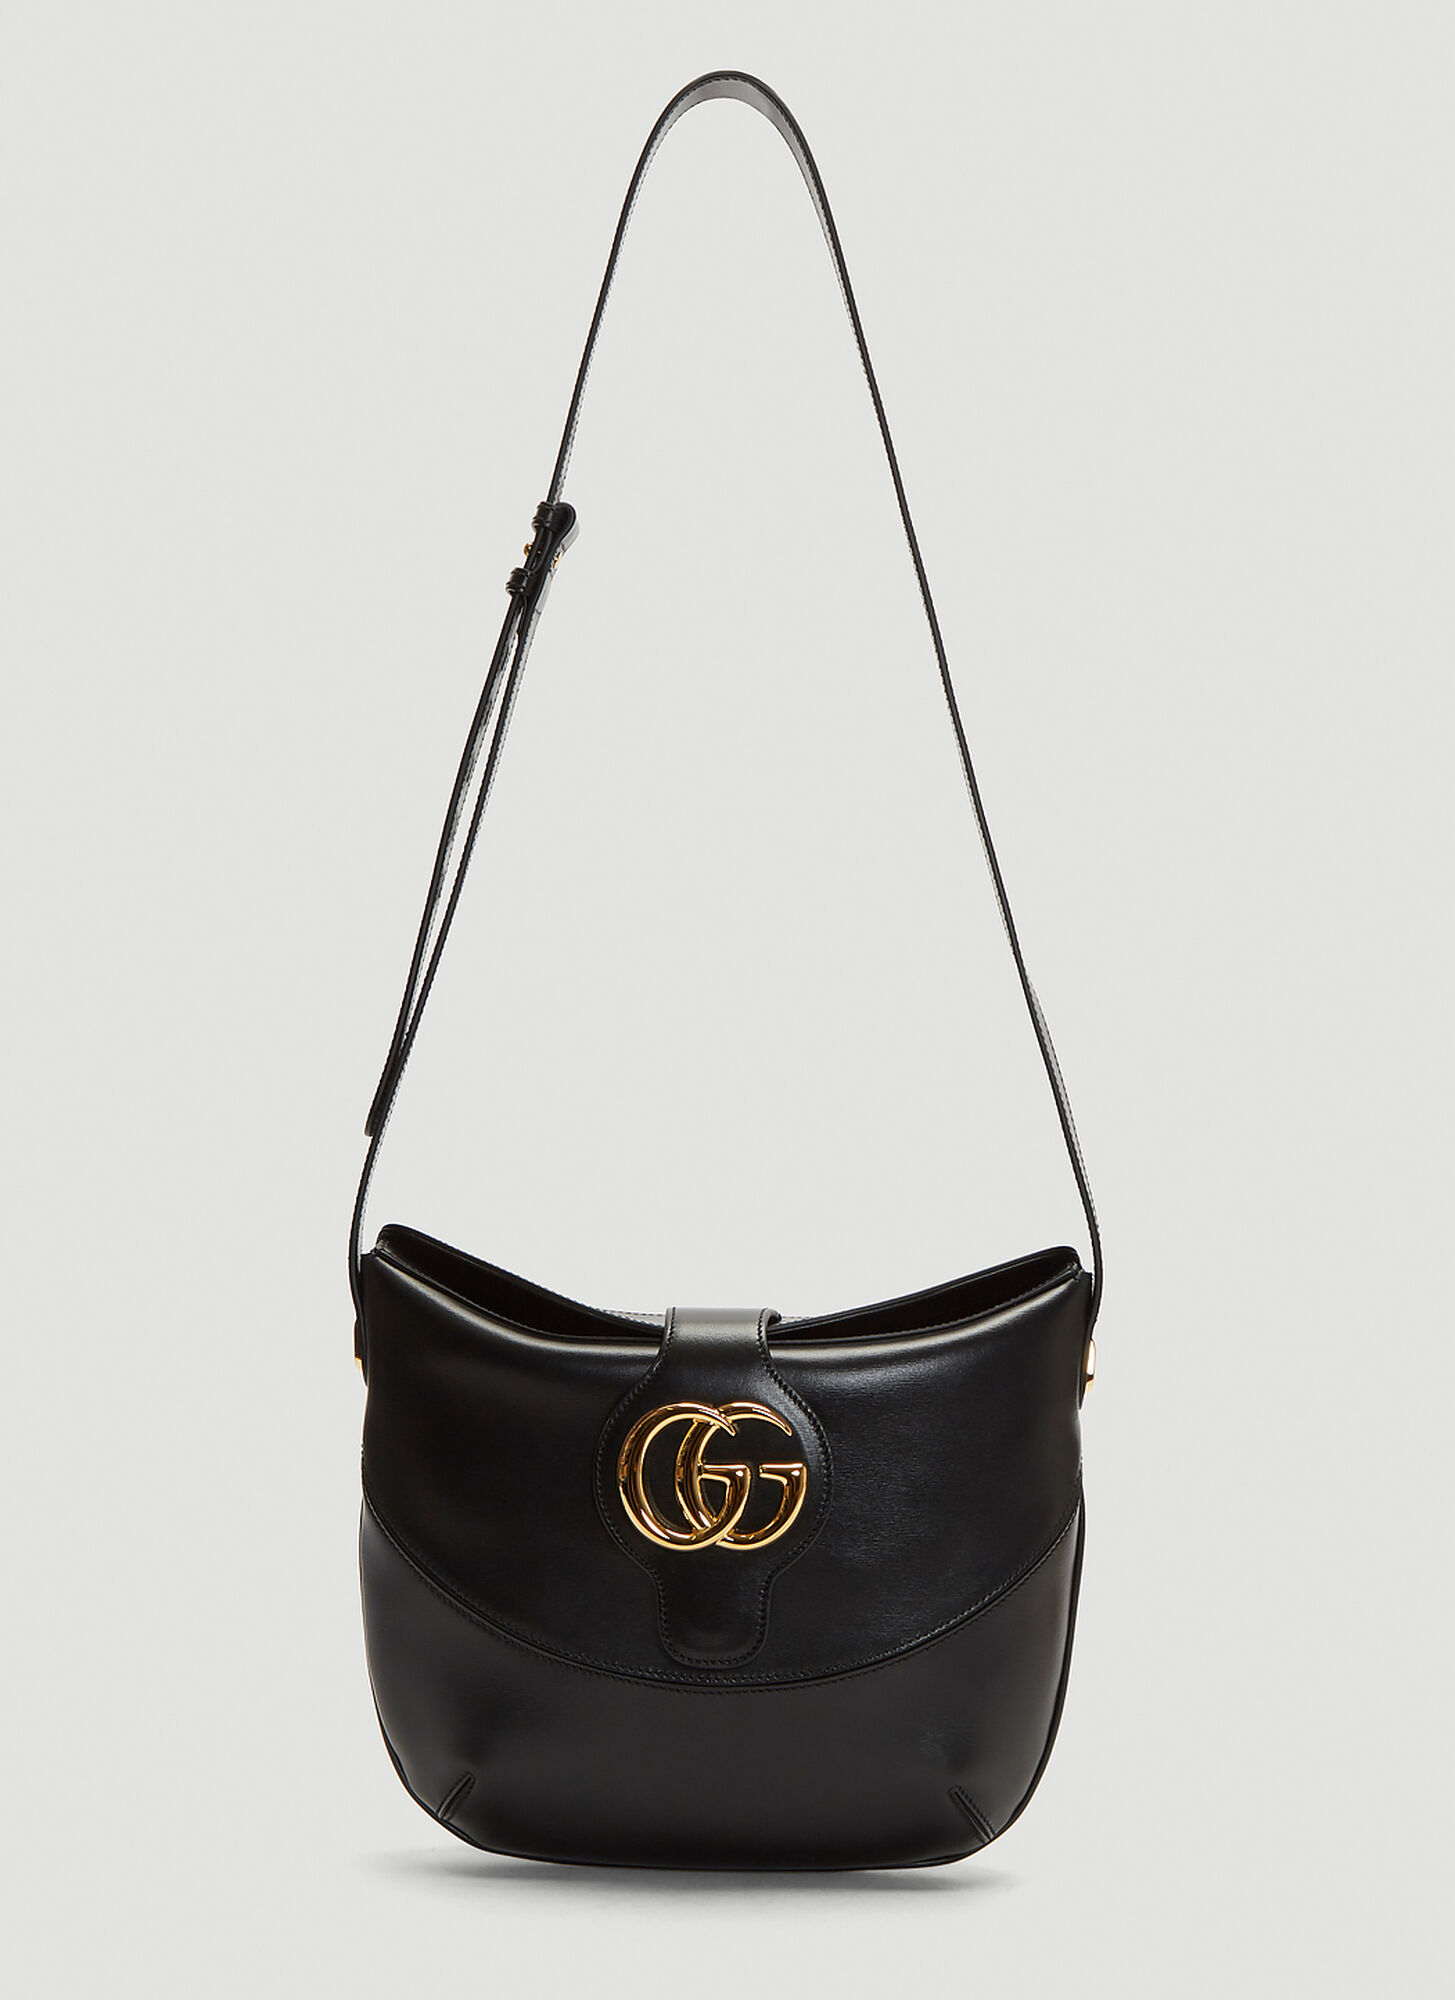 Photo of Gucci Arli Shoulder Bag in Black - Gucci Shoulder Bags